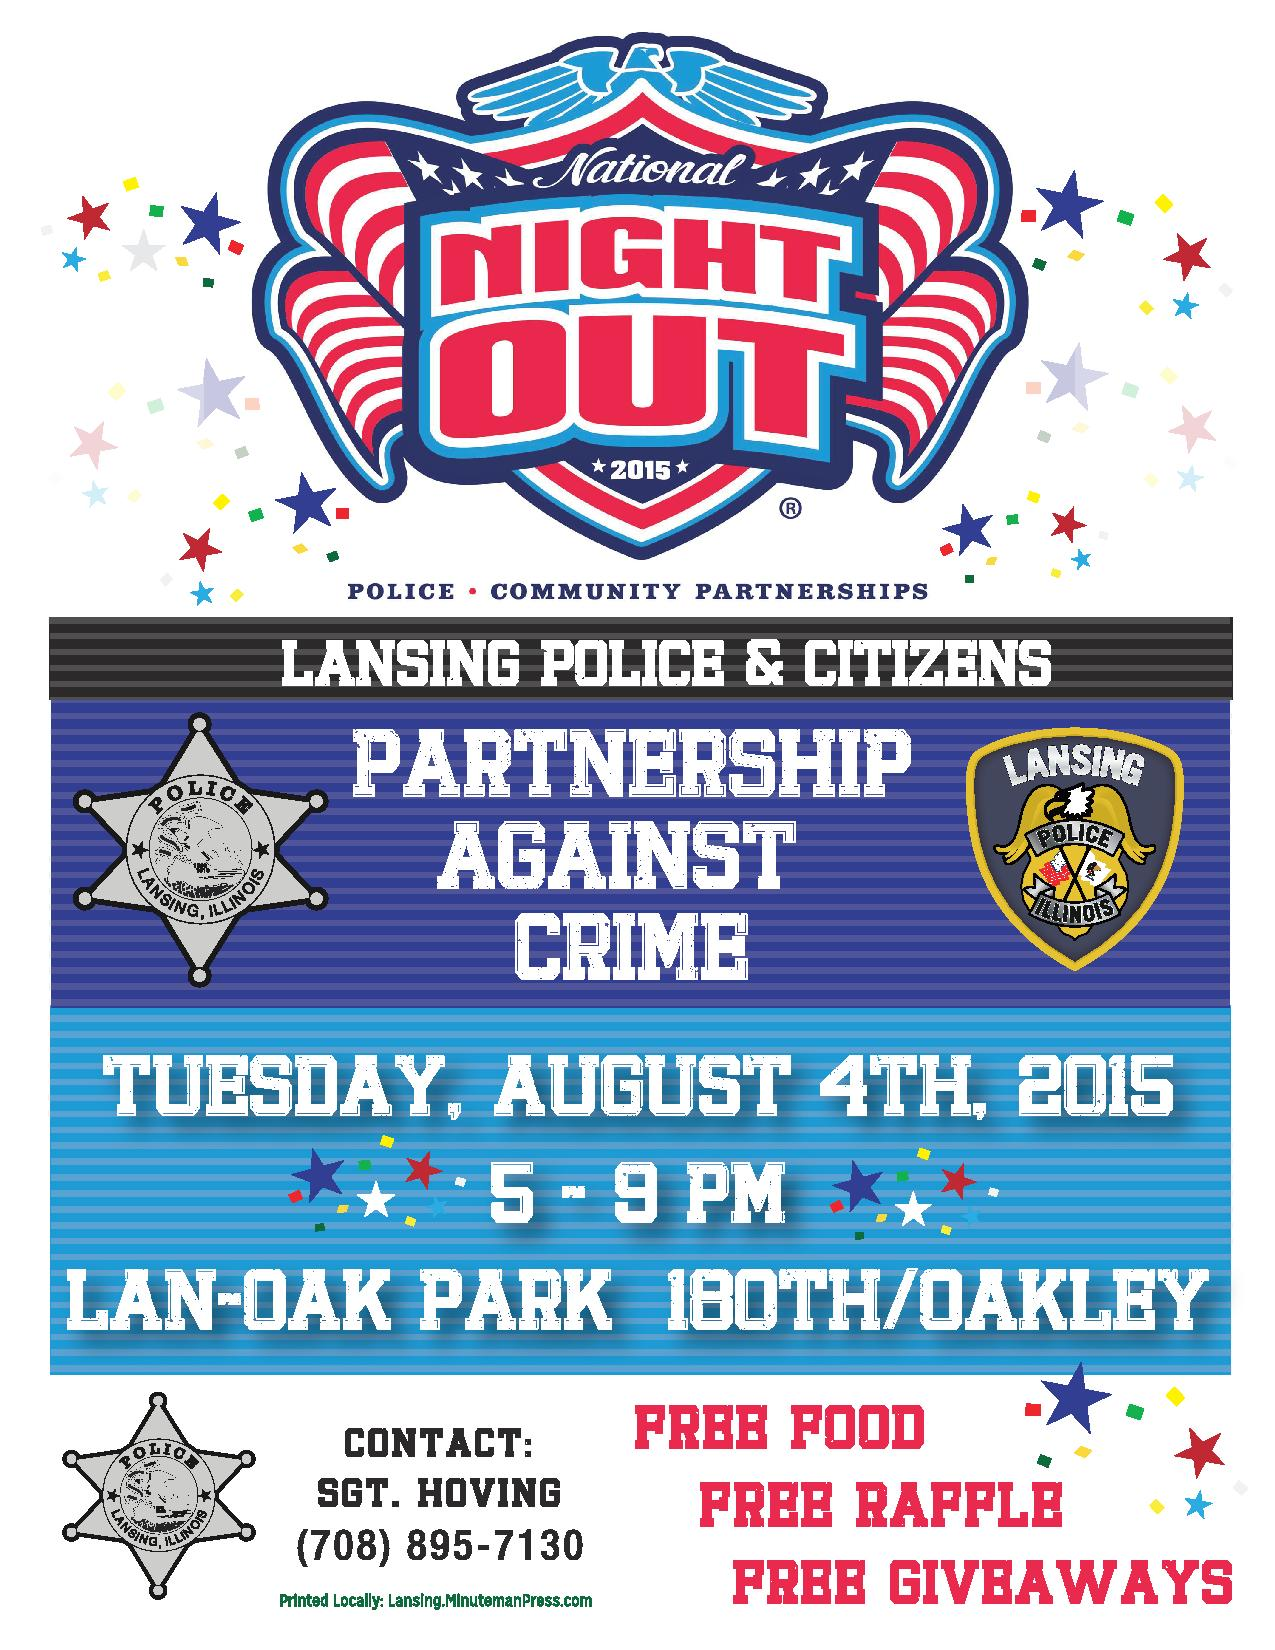 Lansing_Police_National_Night_Out_Flyer_Poster-page-001